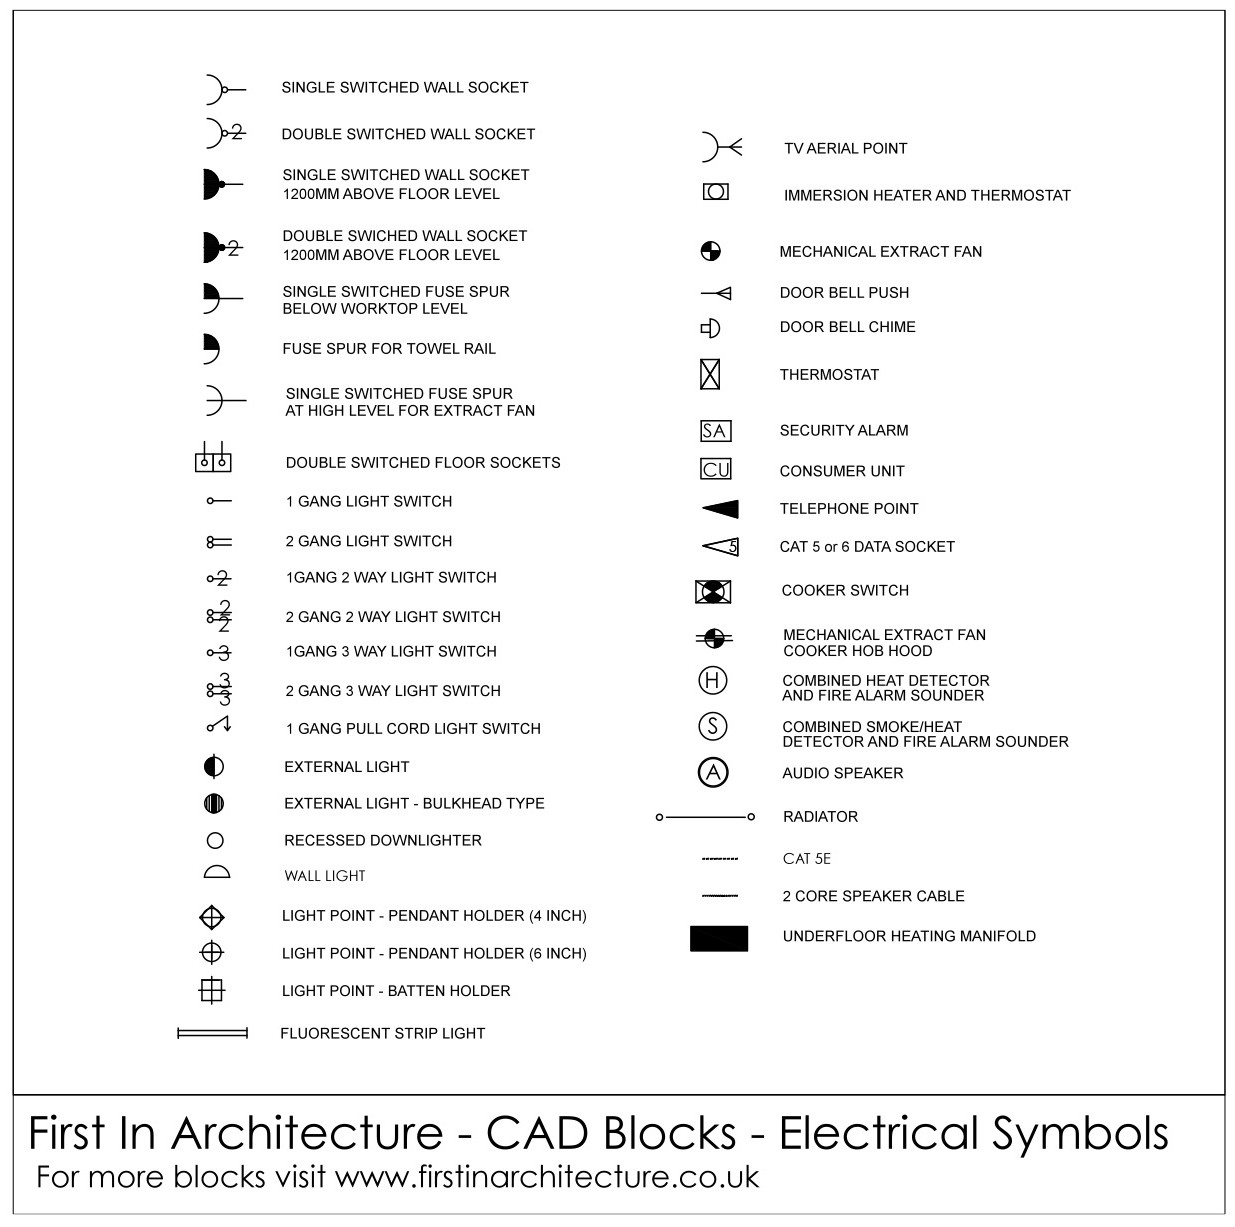 FIA Electrical Symbols CAD Blocks 01 e1408365066339 wiring diagram electric jack plate electrical wiring diagram \u2022